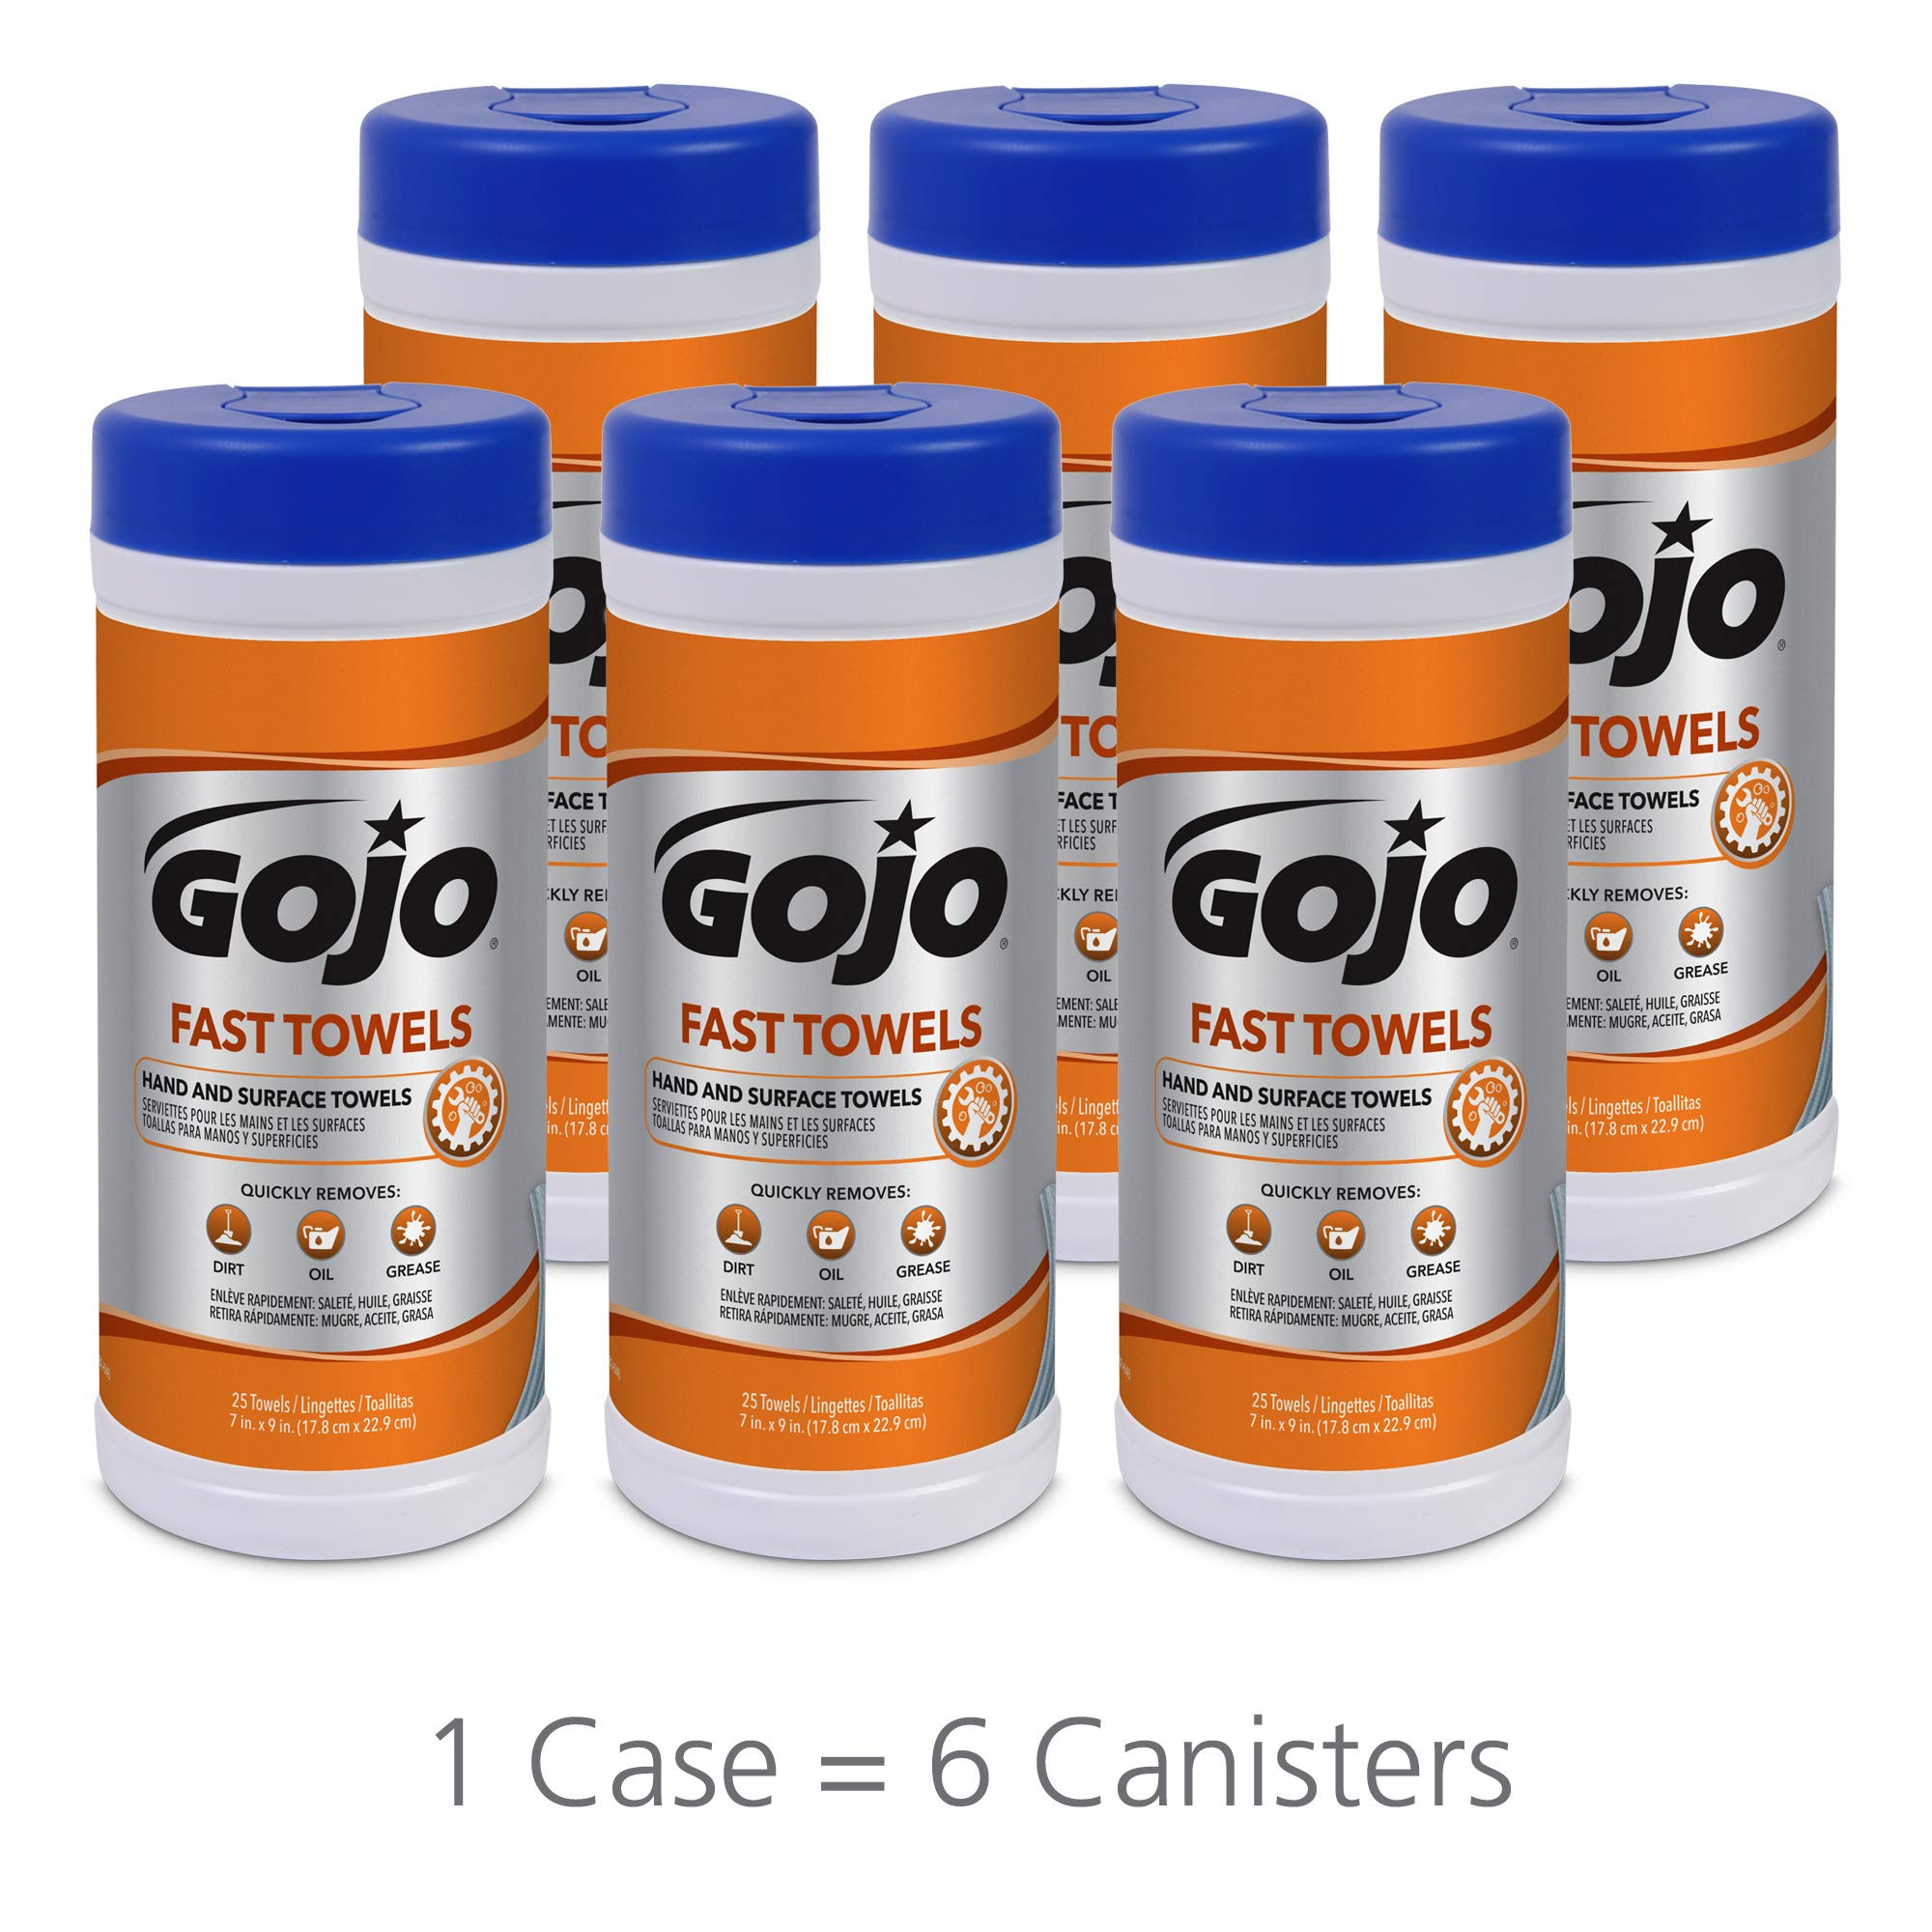 GOJO Fast Towels for Hands and Surface, Fresh Citrus Scent, 25 Count Large Fast Wipes Canister (Pack of 6) - 6282-06 by Gojo